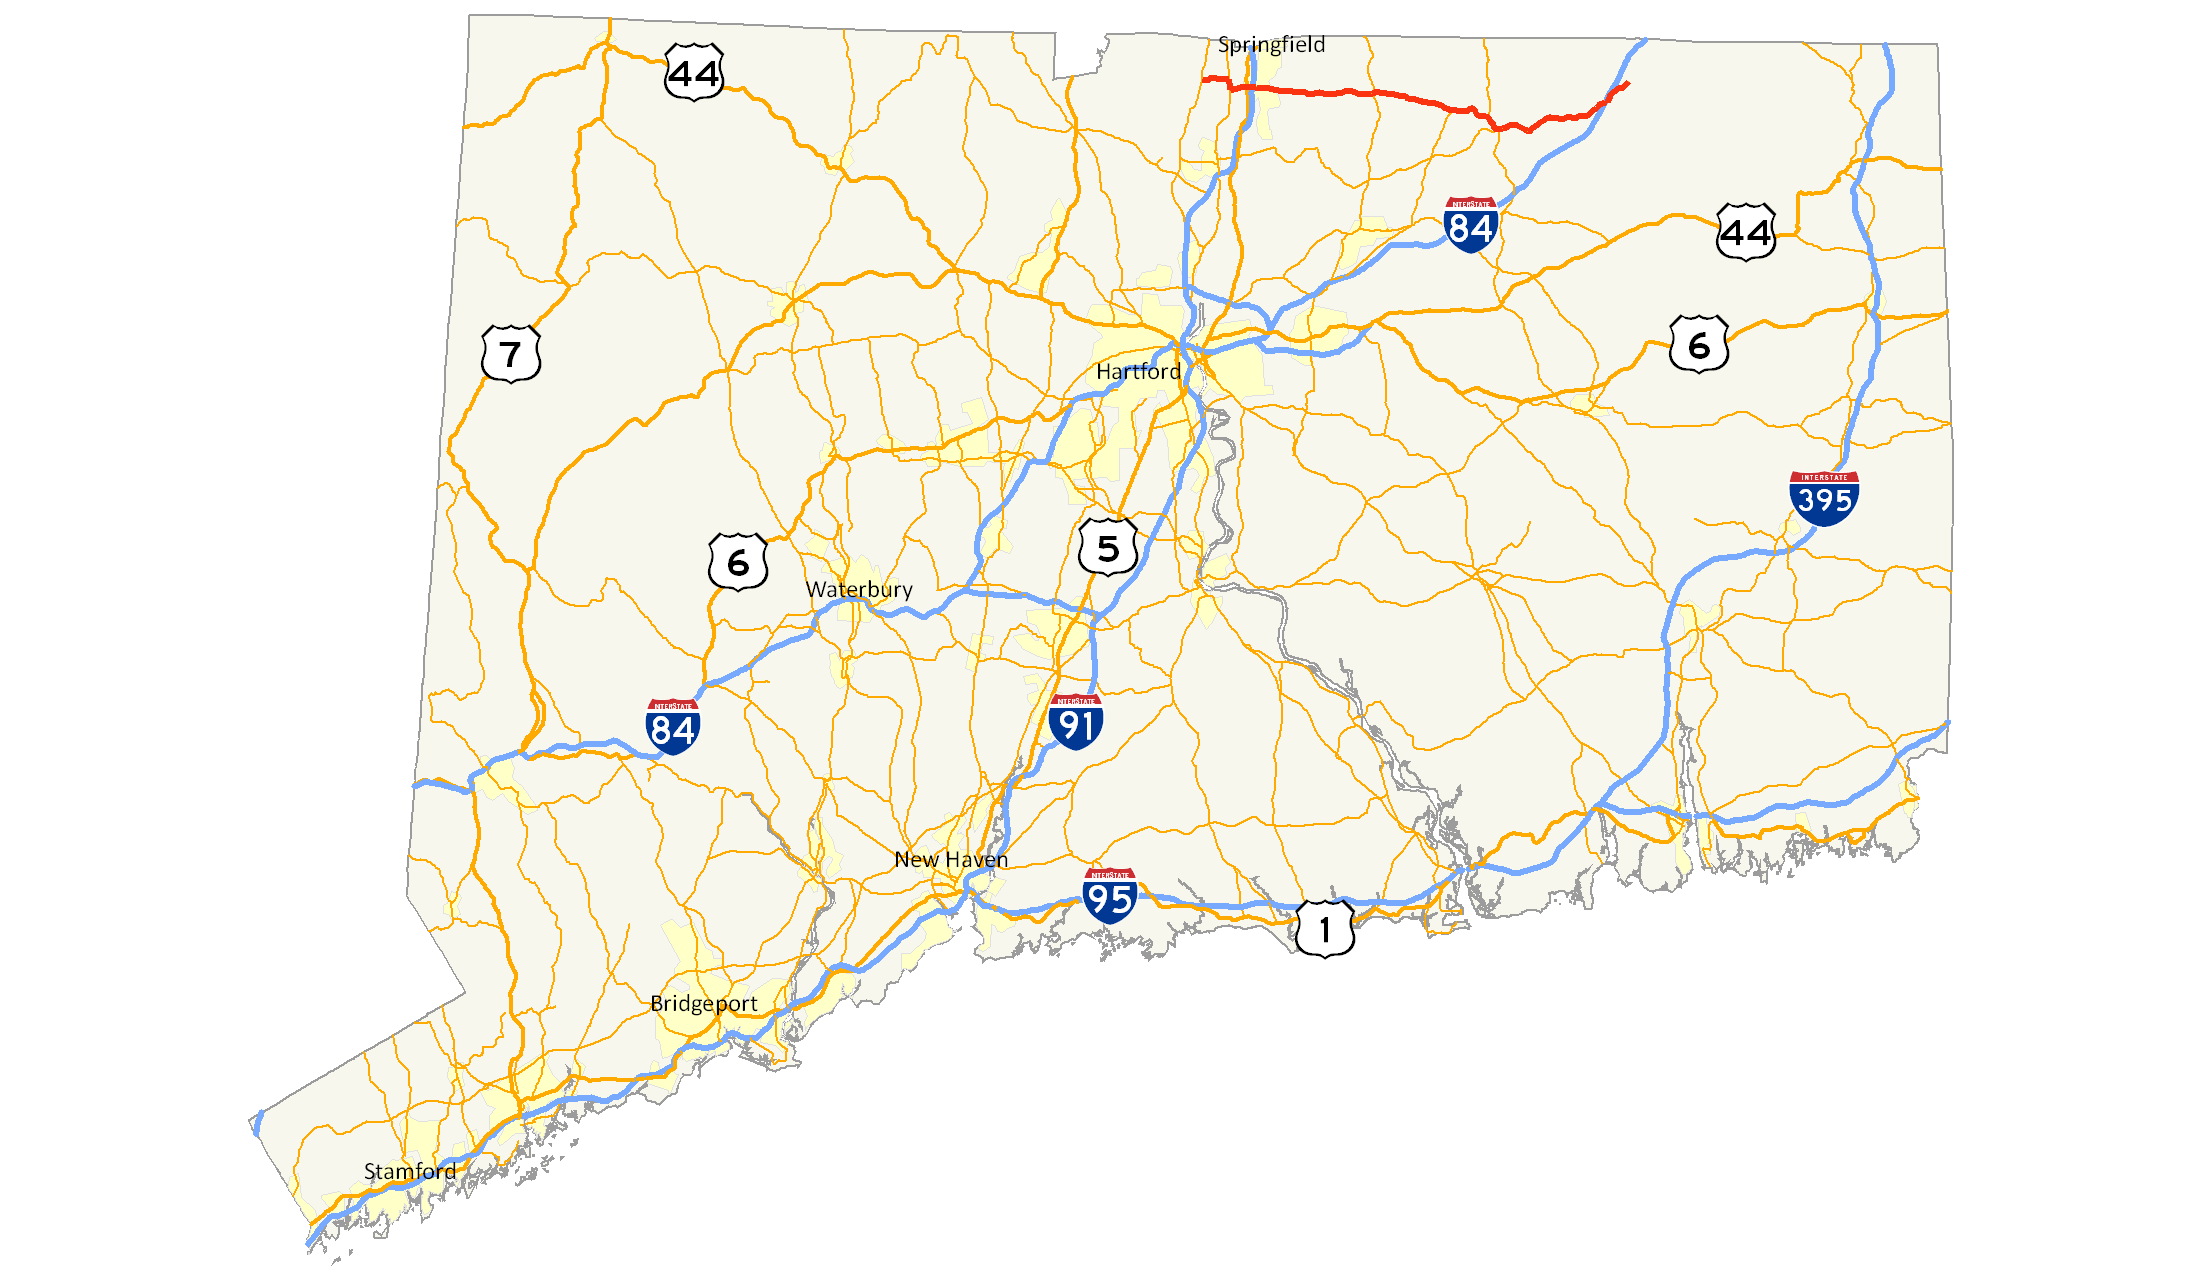 FileConnecticut Route Mappng Wikimedia Commons - Ct road map